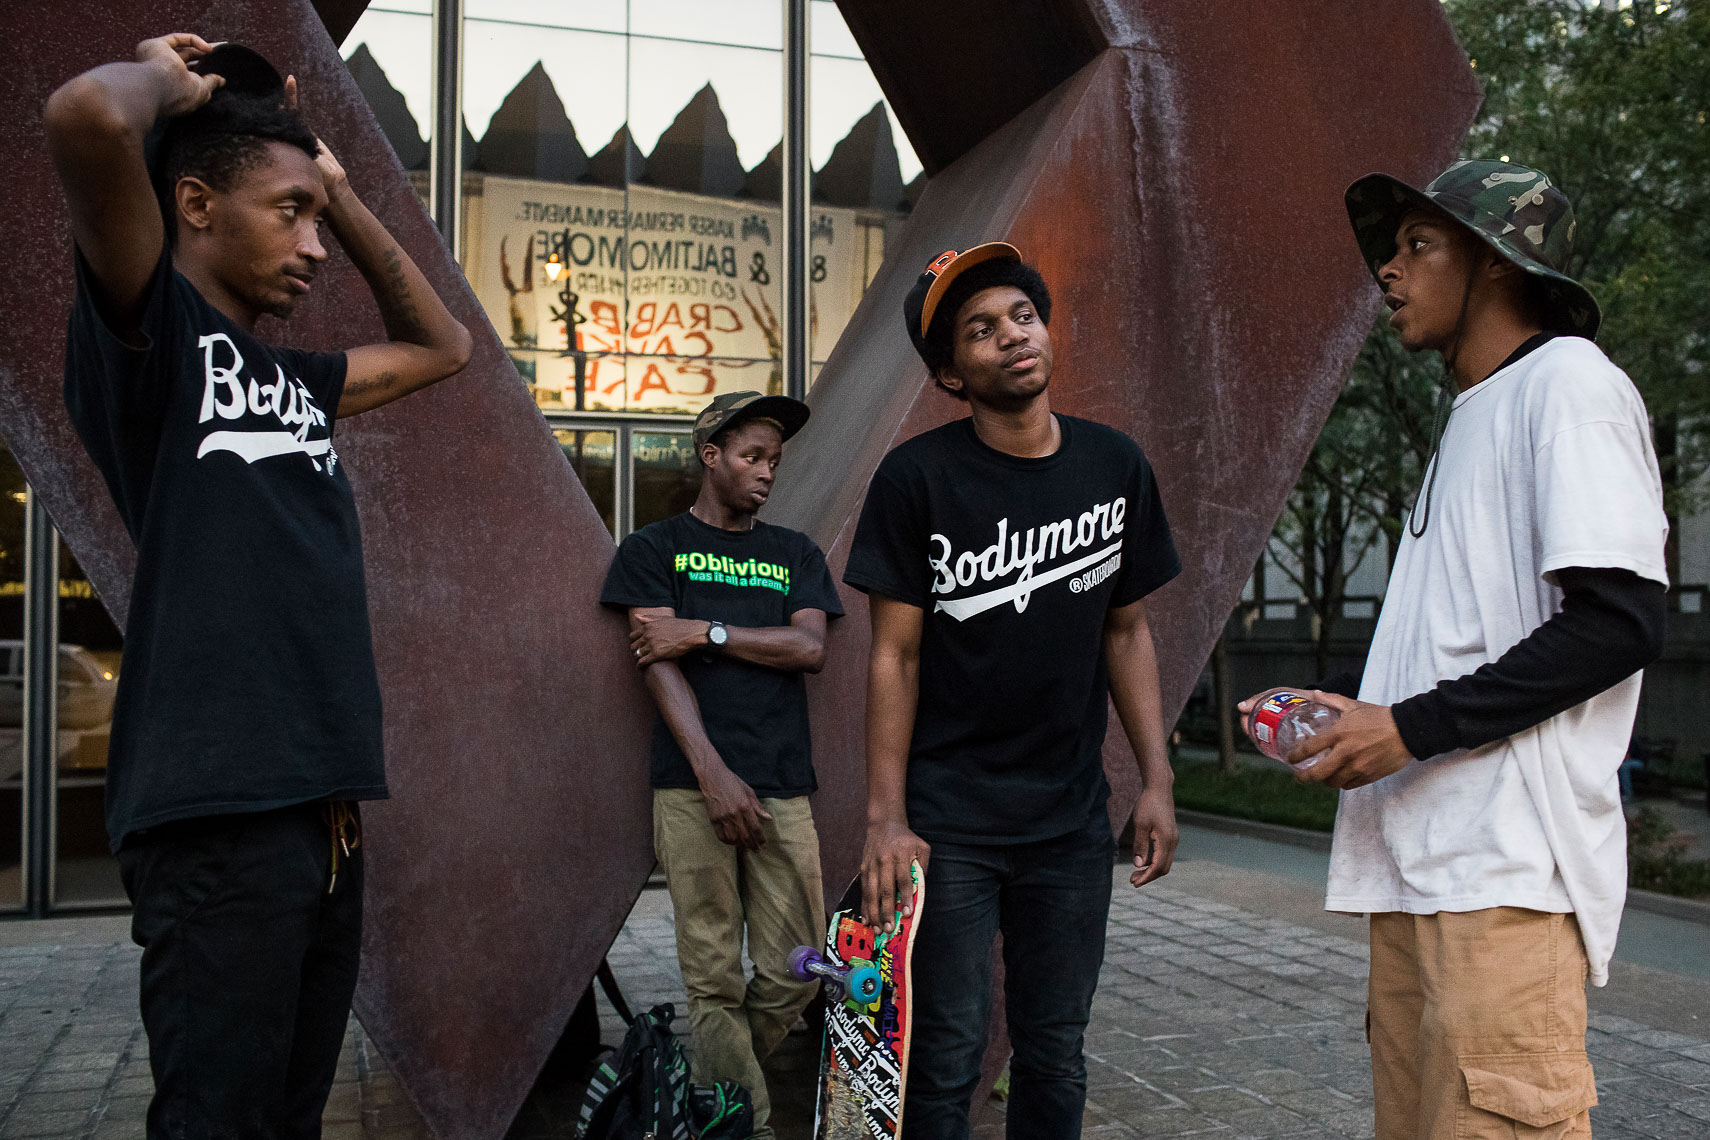 milksquad10_Milksquad was a group of African American Baltimore youth skateboarders sponsored by Milkcrate Athletics NYC who skateboard in Baltimore city youth culture documentary photography project